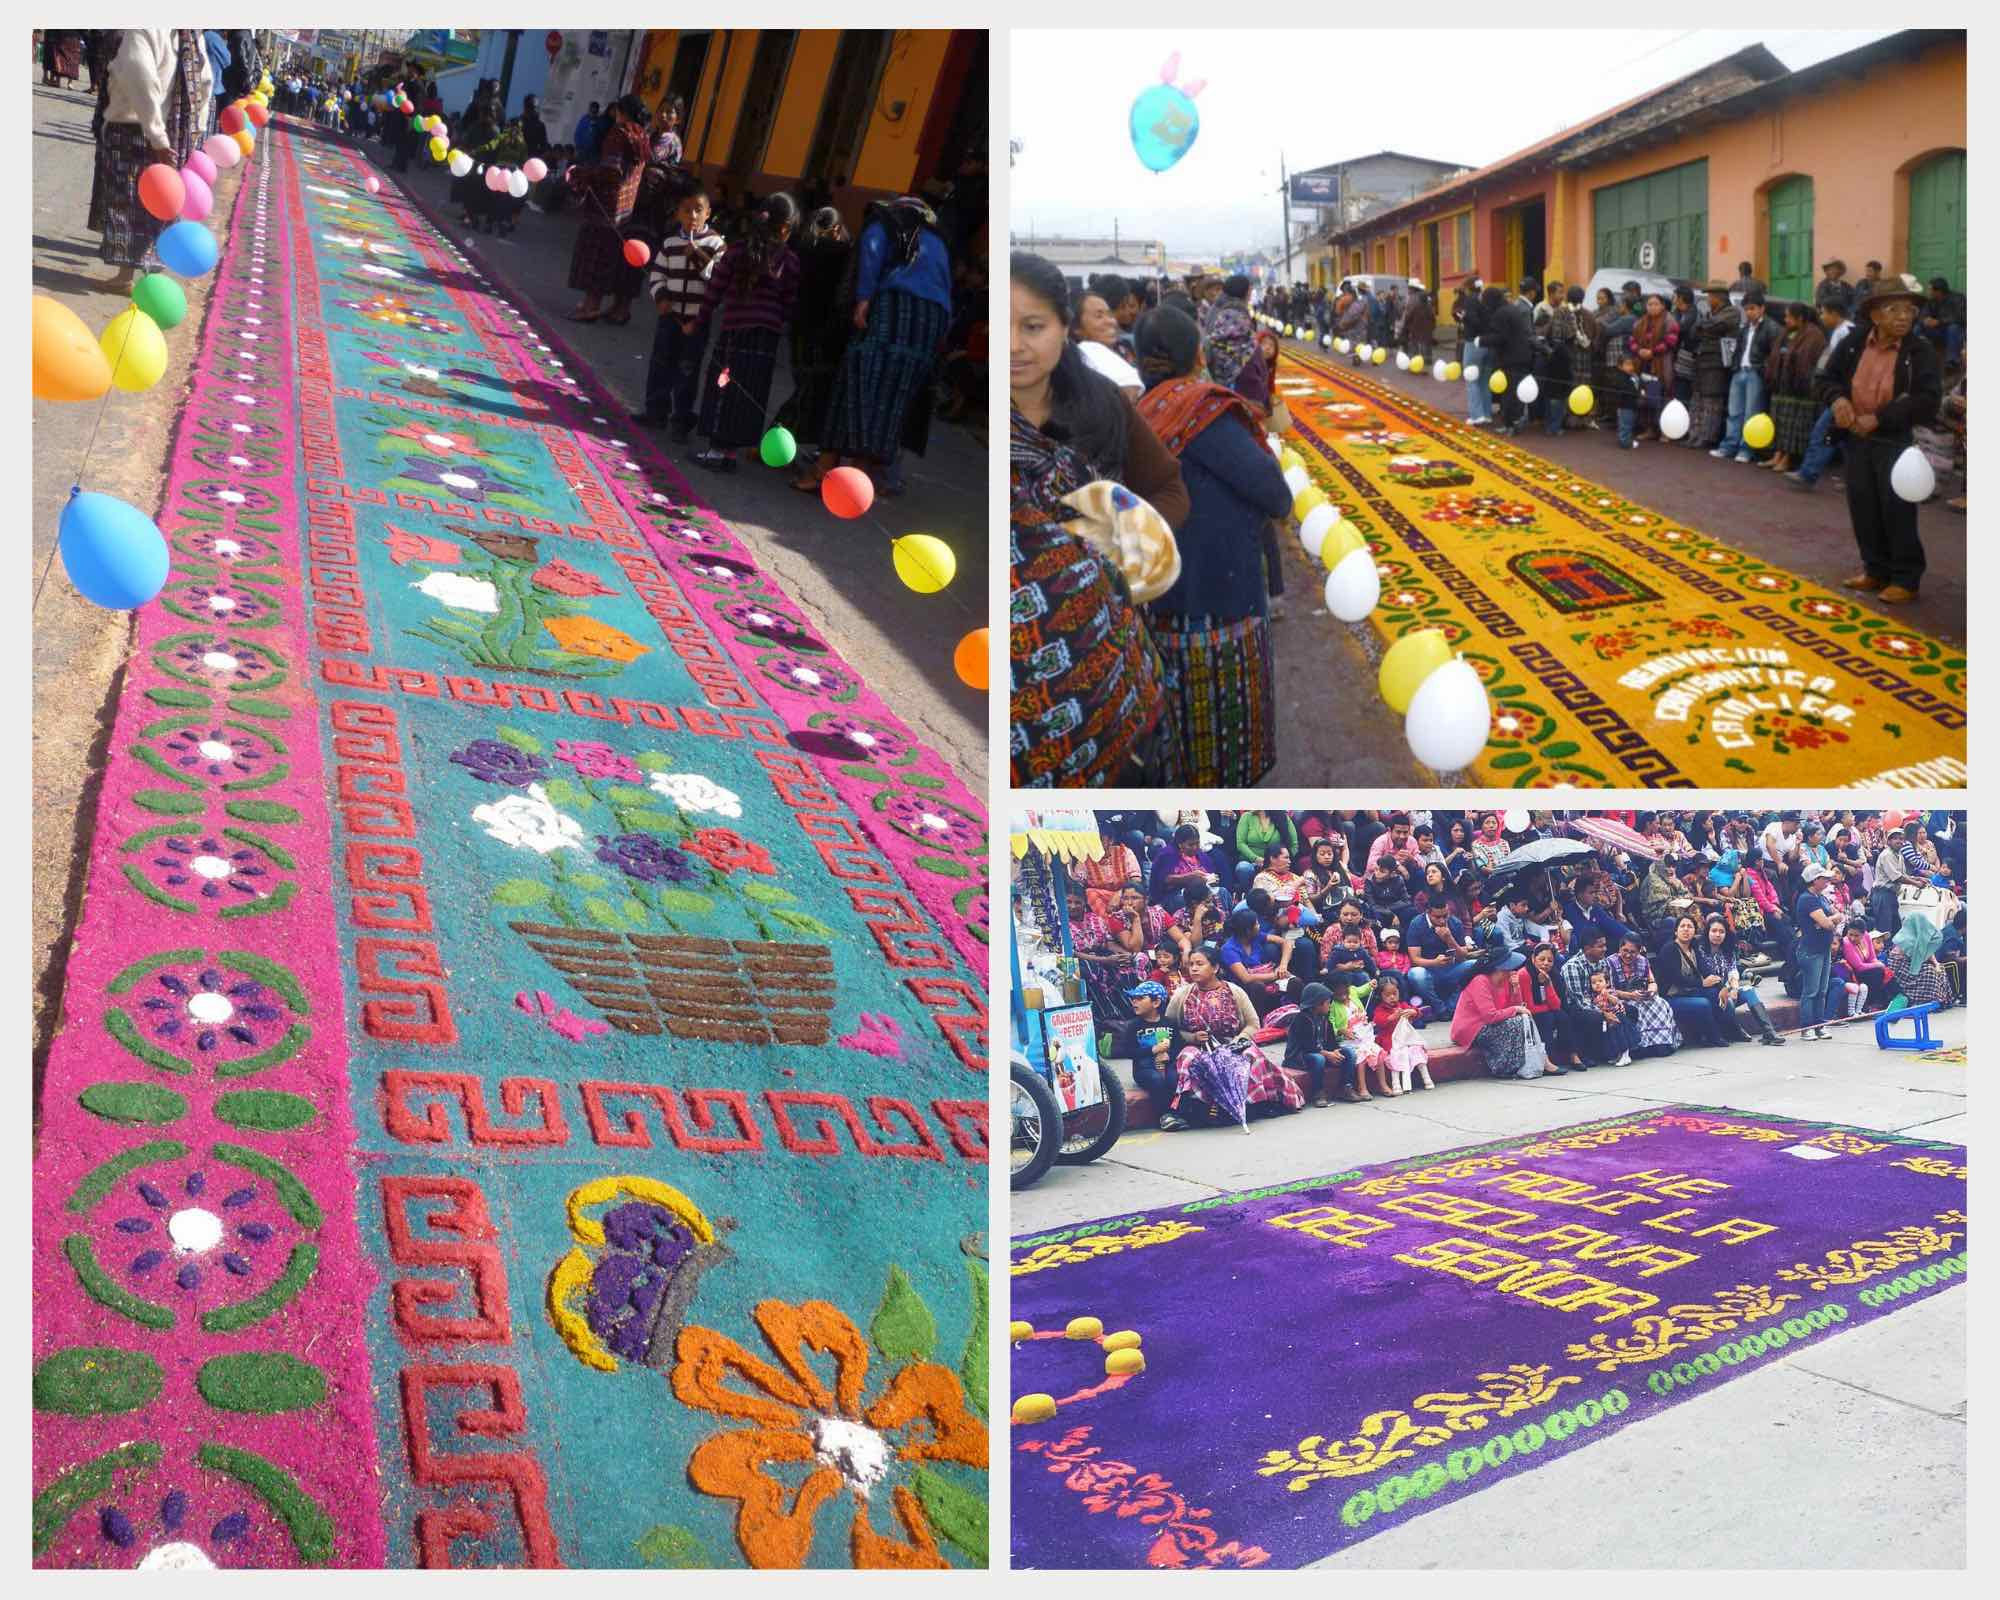 Colorful alfombras in Guatemala